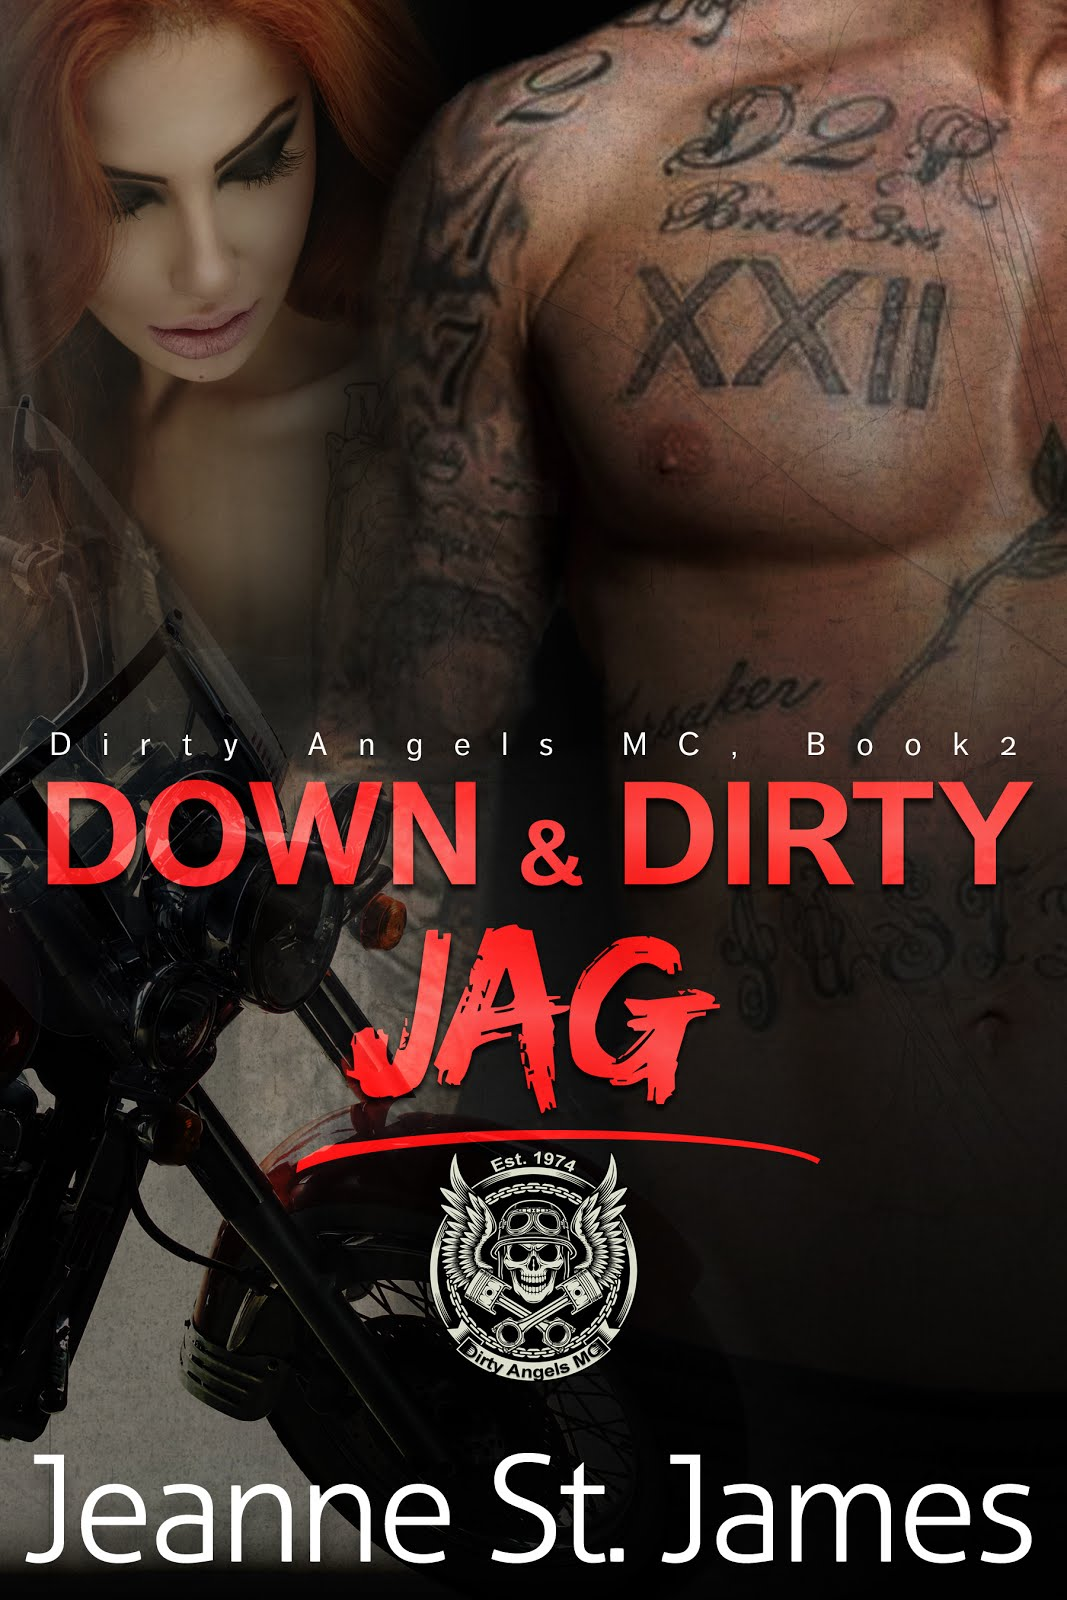 Down & Dirty: Jag